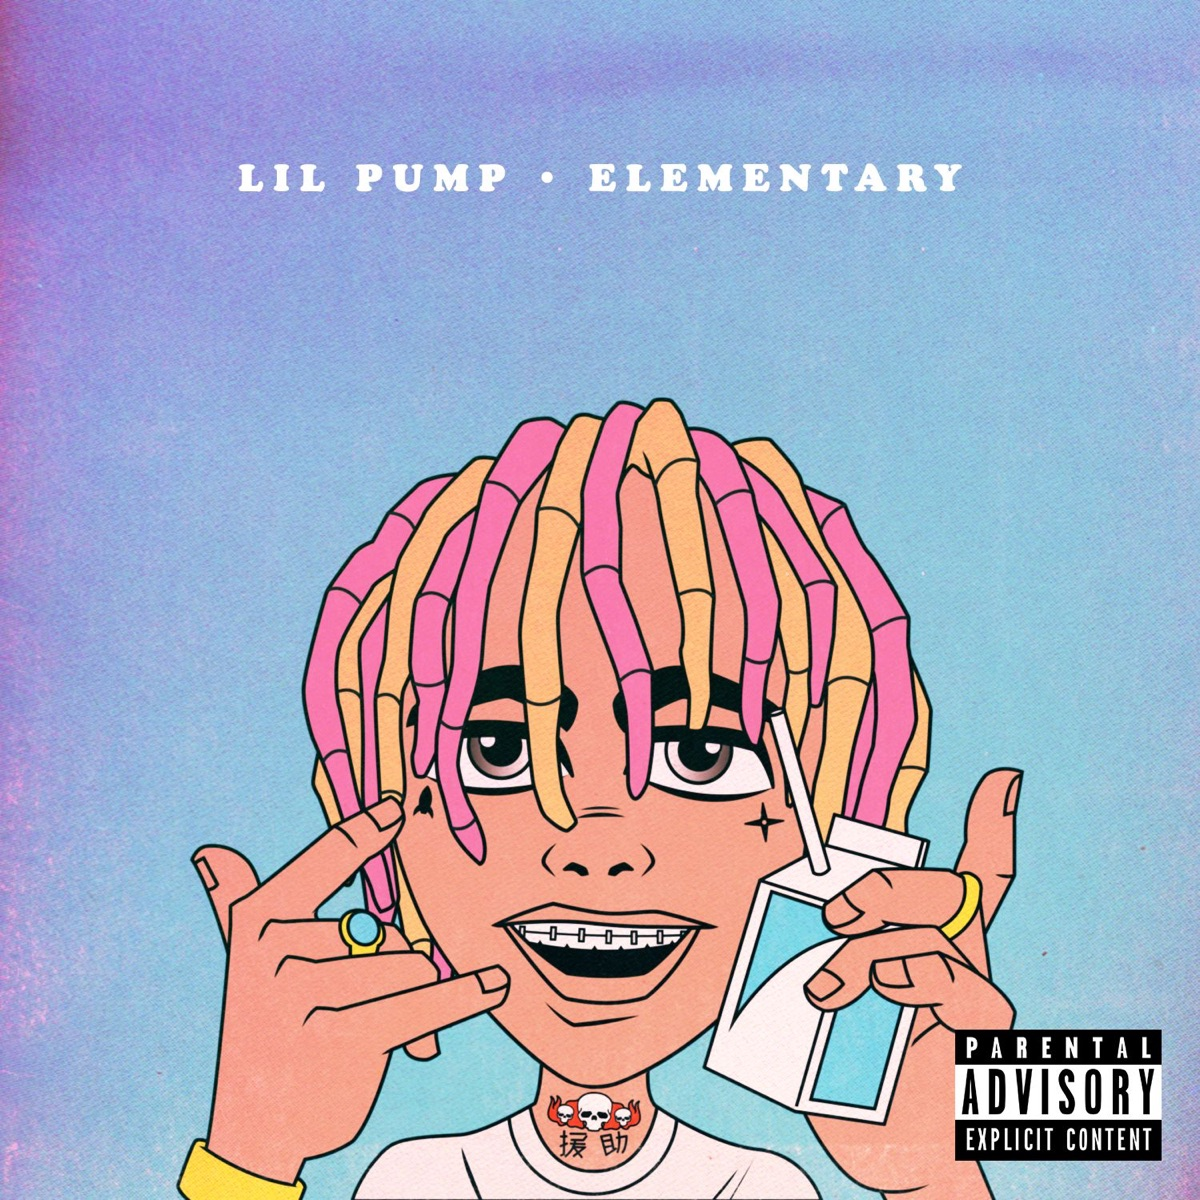 Elementary - Single Lil Pump CD cover